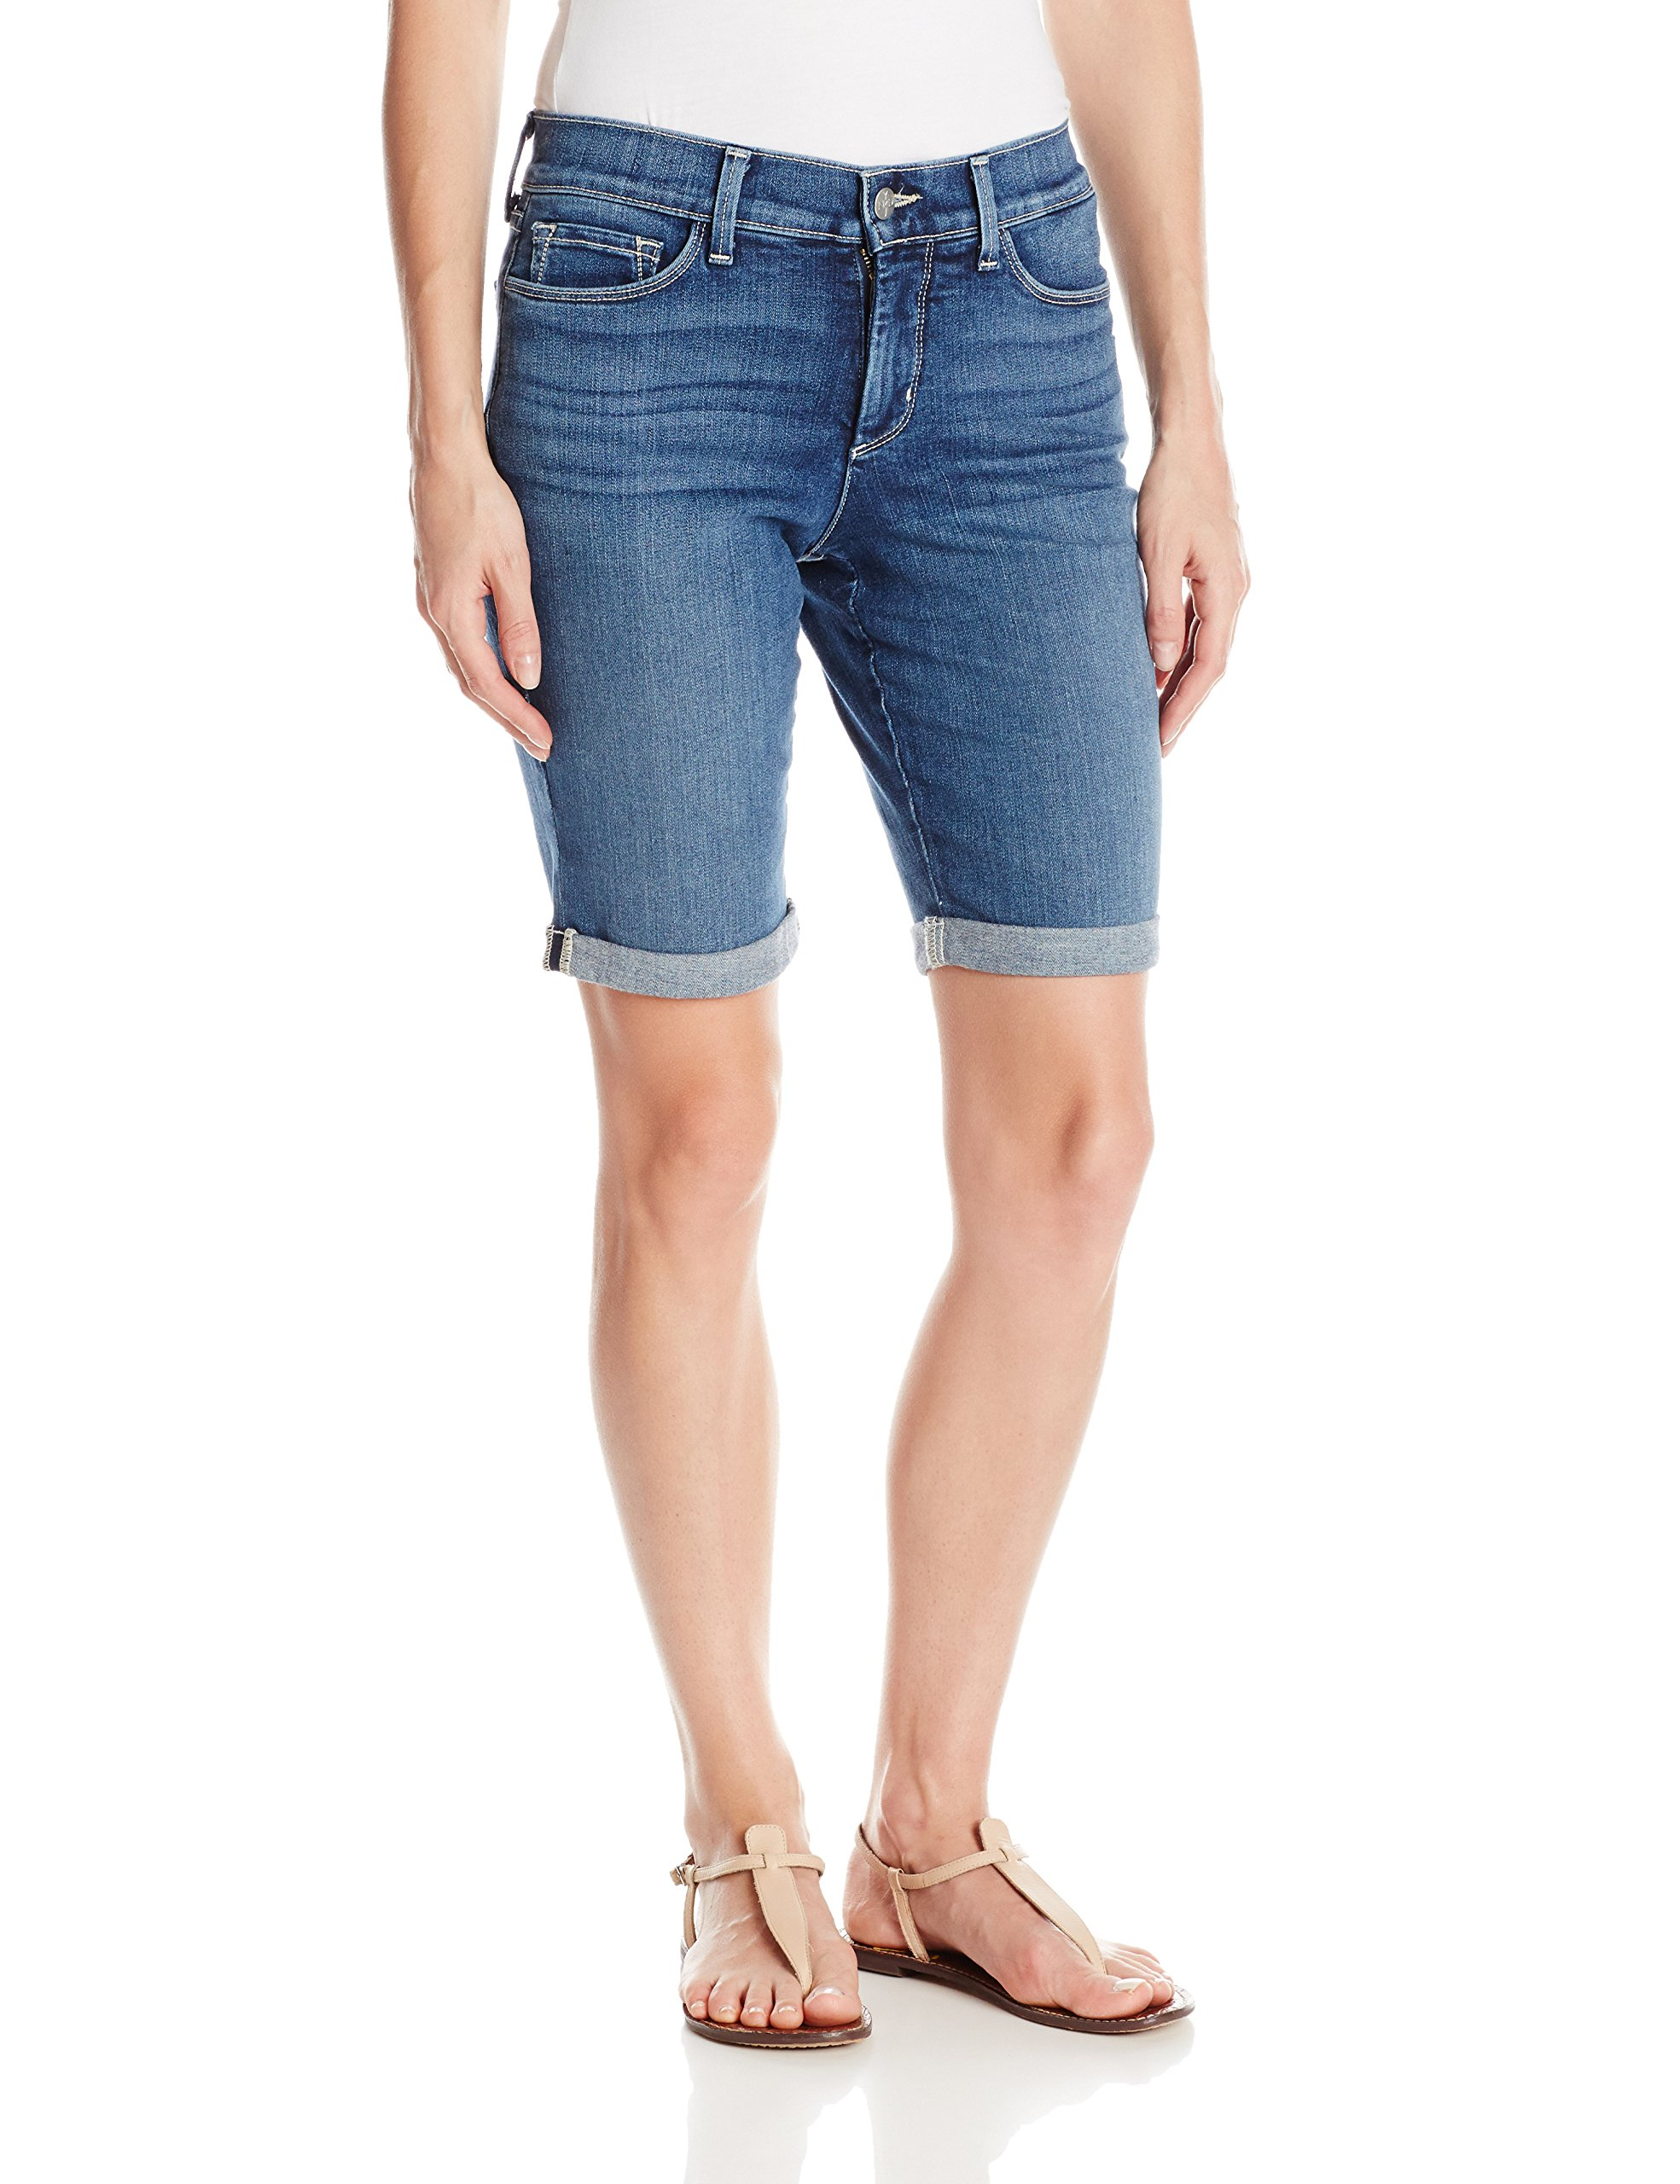 NYDJ Women's Petite Size Briella Roll Cuff Jean Short, Heyburn, 10 by NYDJ